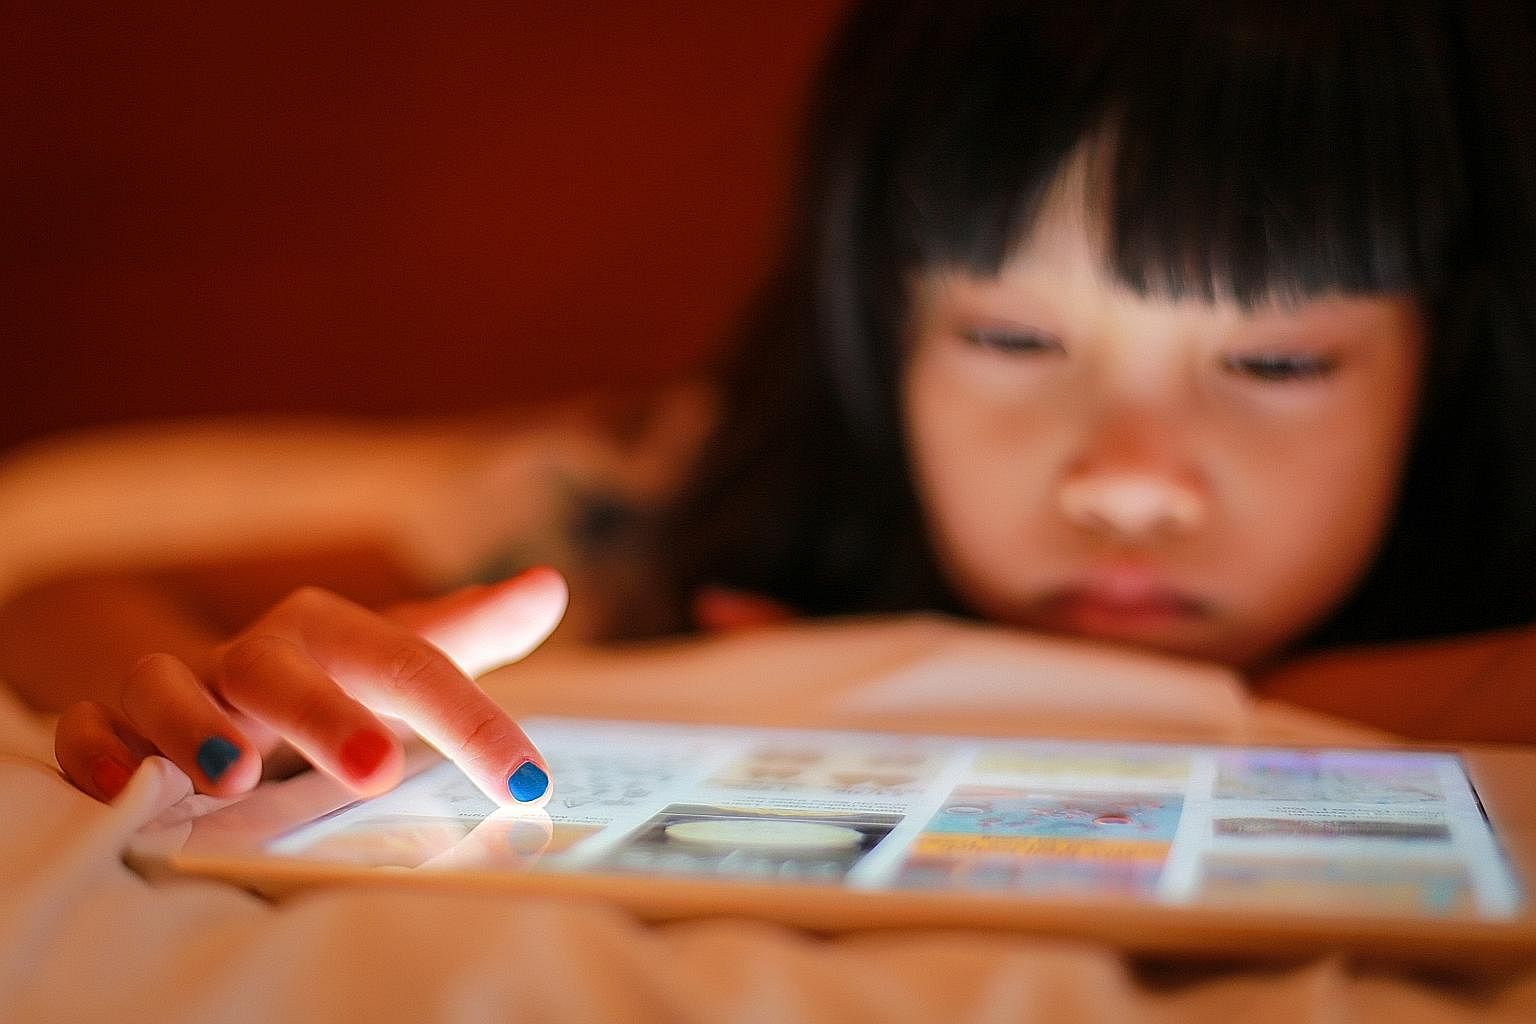 According to a study by the Singapore Eye Research Institute, childhood myopia is largely attributed to frequent near-work activities done with handheld devices such as iPads.